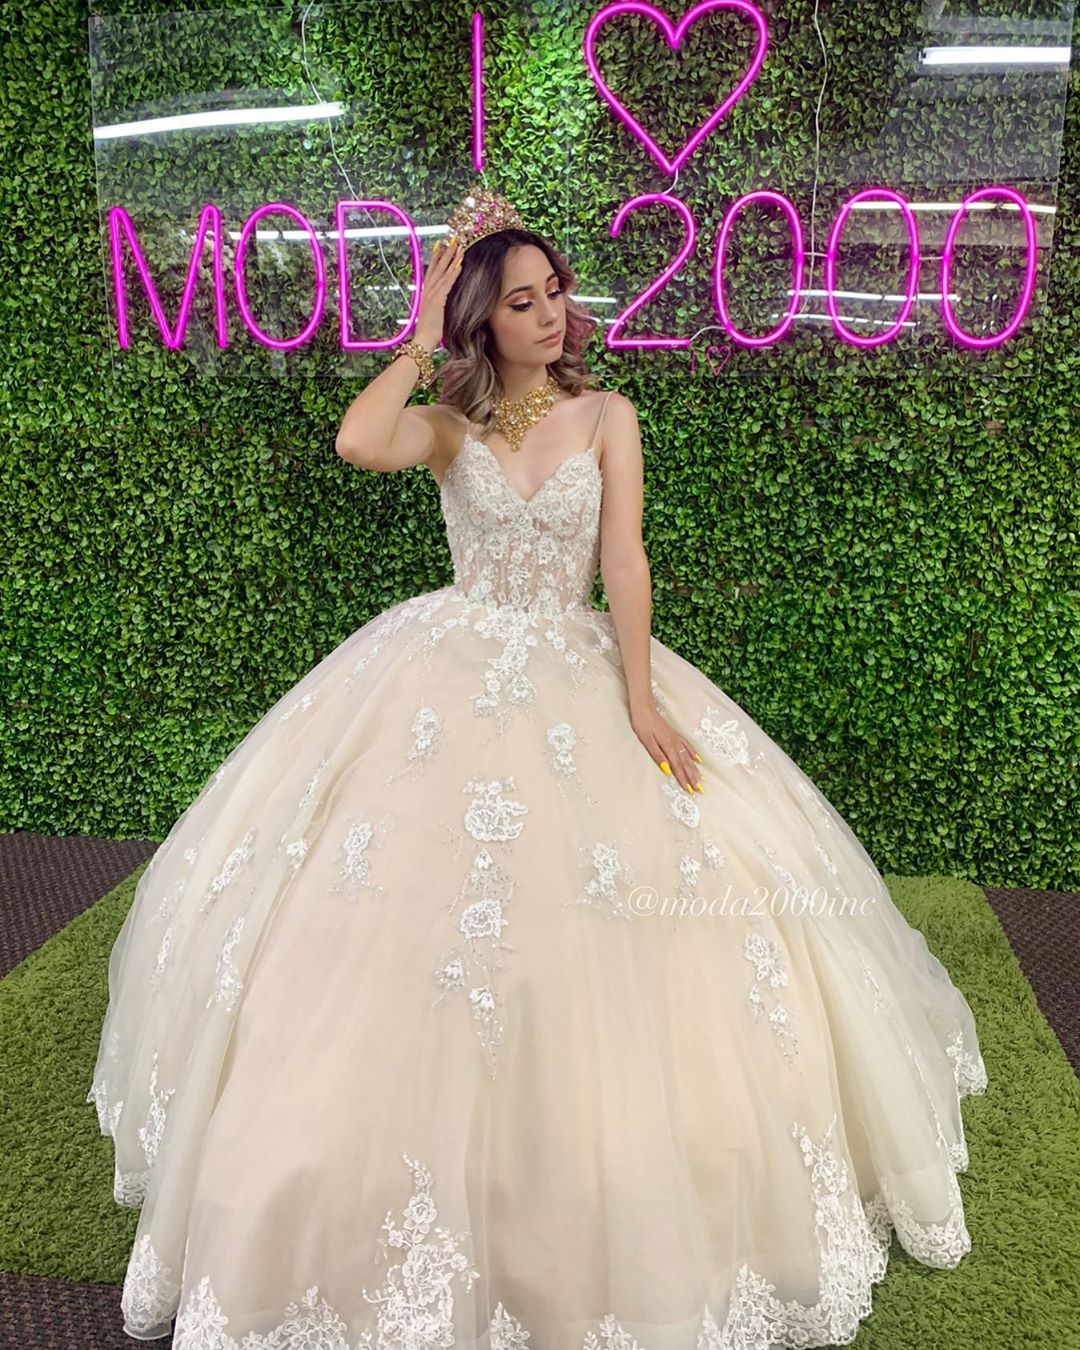 Moda 2000 On Instagram Comment If This Is Your Dream Dress Want To Book An Appointm Quince Dresses Quinceanera Dresses Pink Champagne Quinceanera Dresses [ 1350 x 1080 Pixel ]